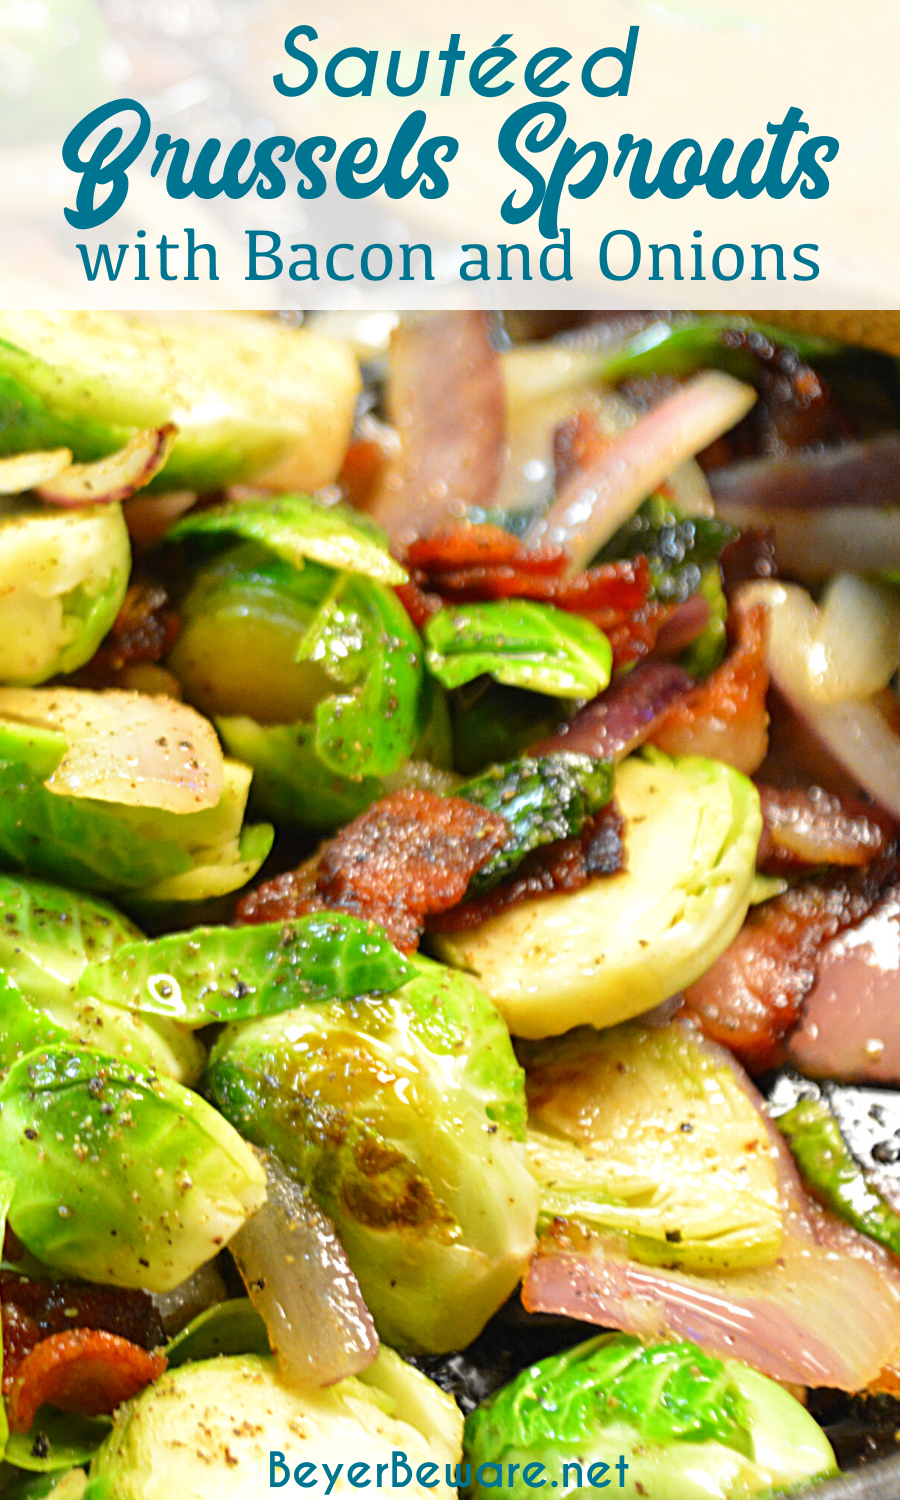 Cast-Iron skillet brussels Sprouts with bacon and onions are the way to eat Brussels sprouts with caramelized red onions and crispy fried bacon.